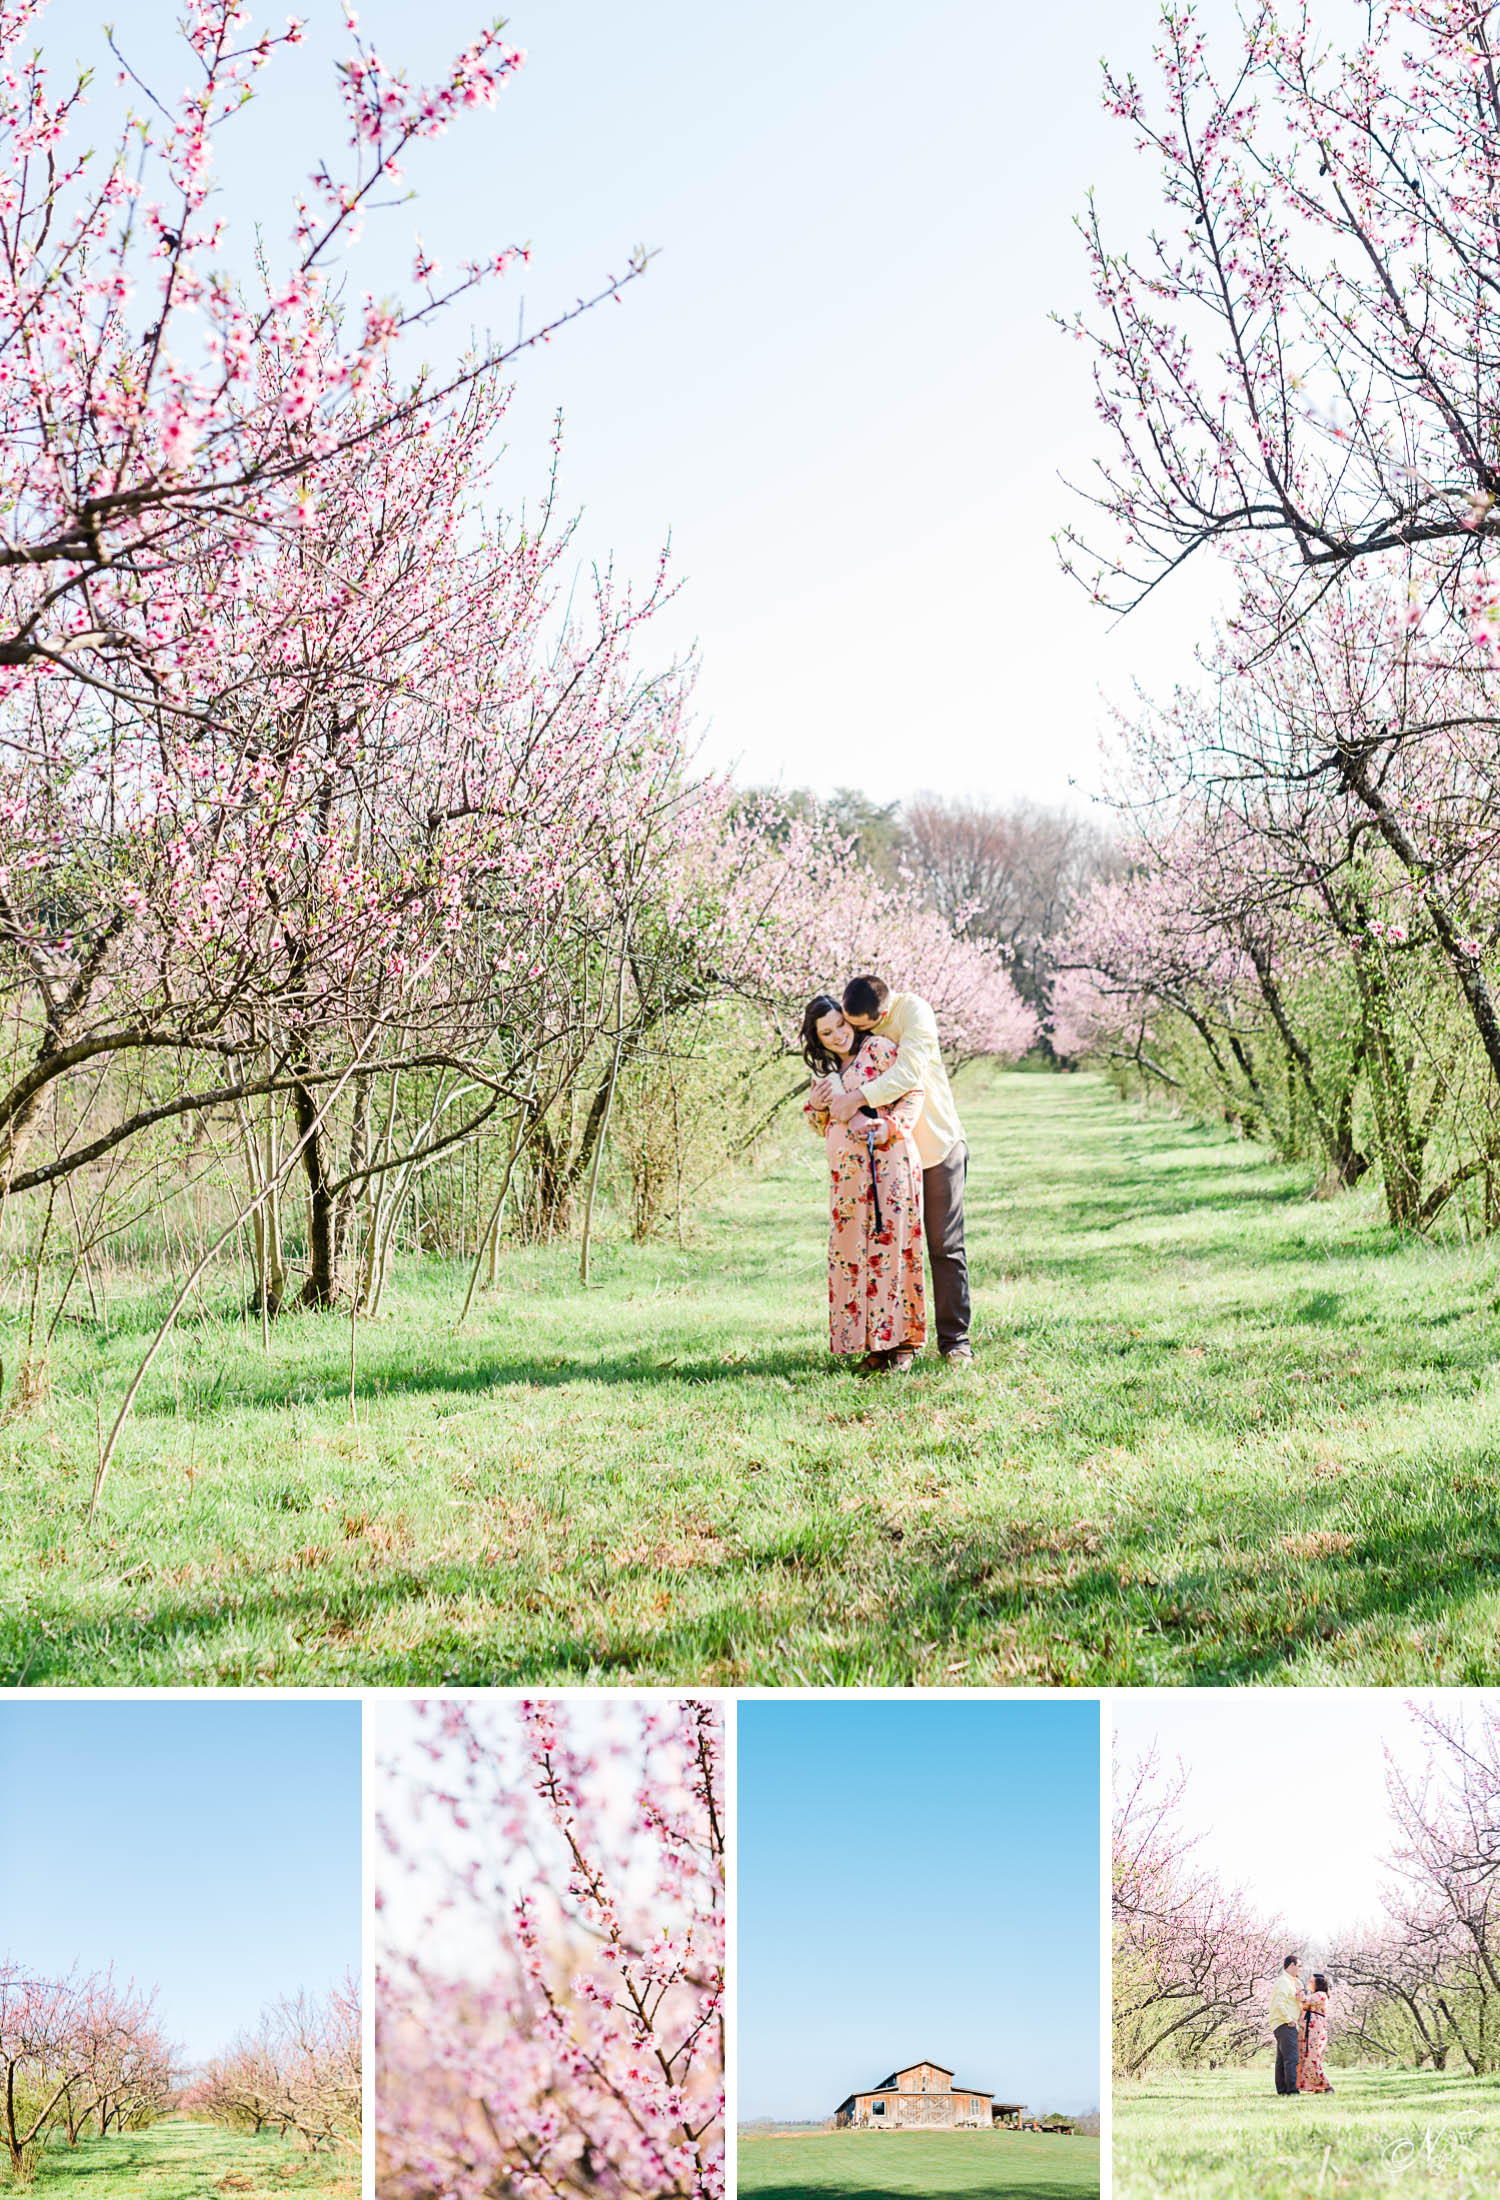 Nelya. The peach blossoms in full bloom at the Barn at Drewia Hill in Sale Creek TN.